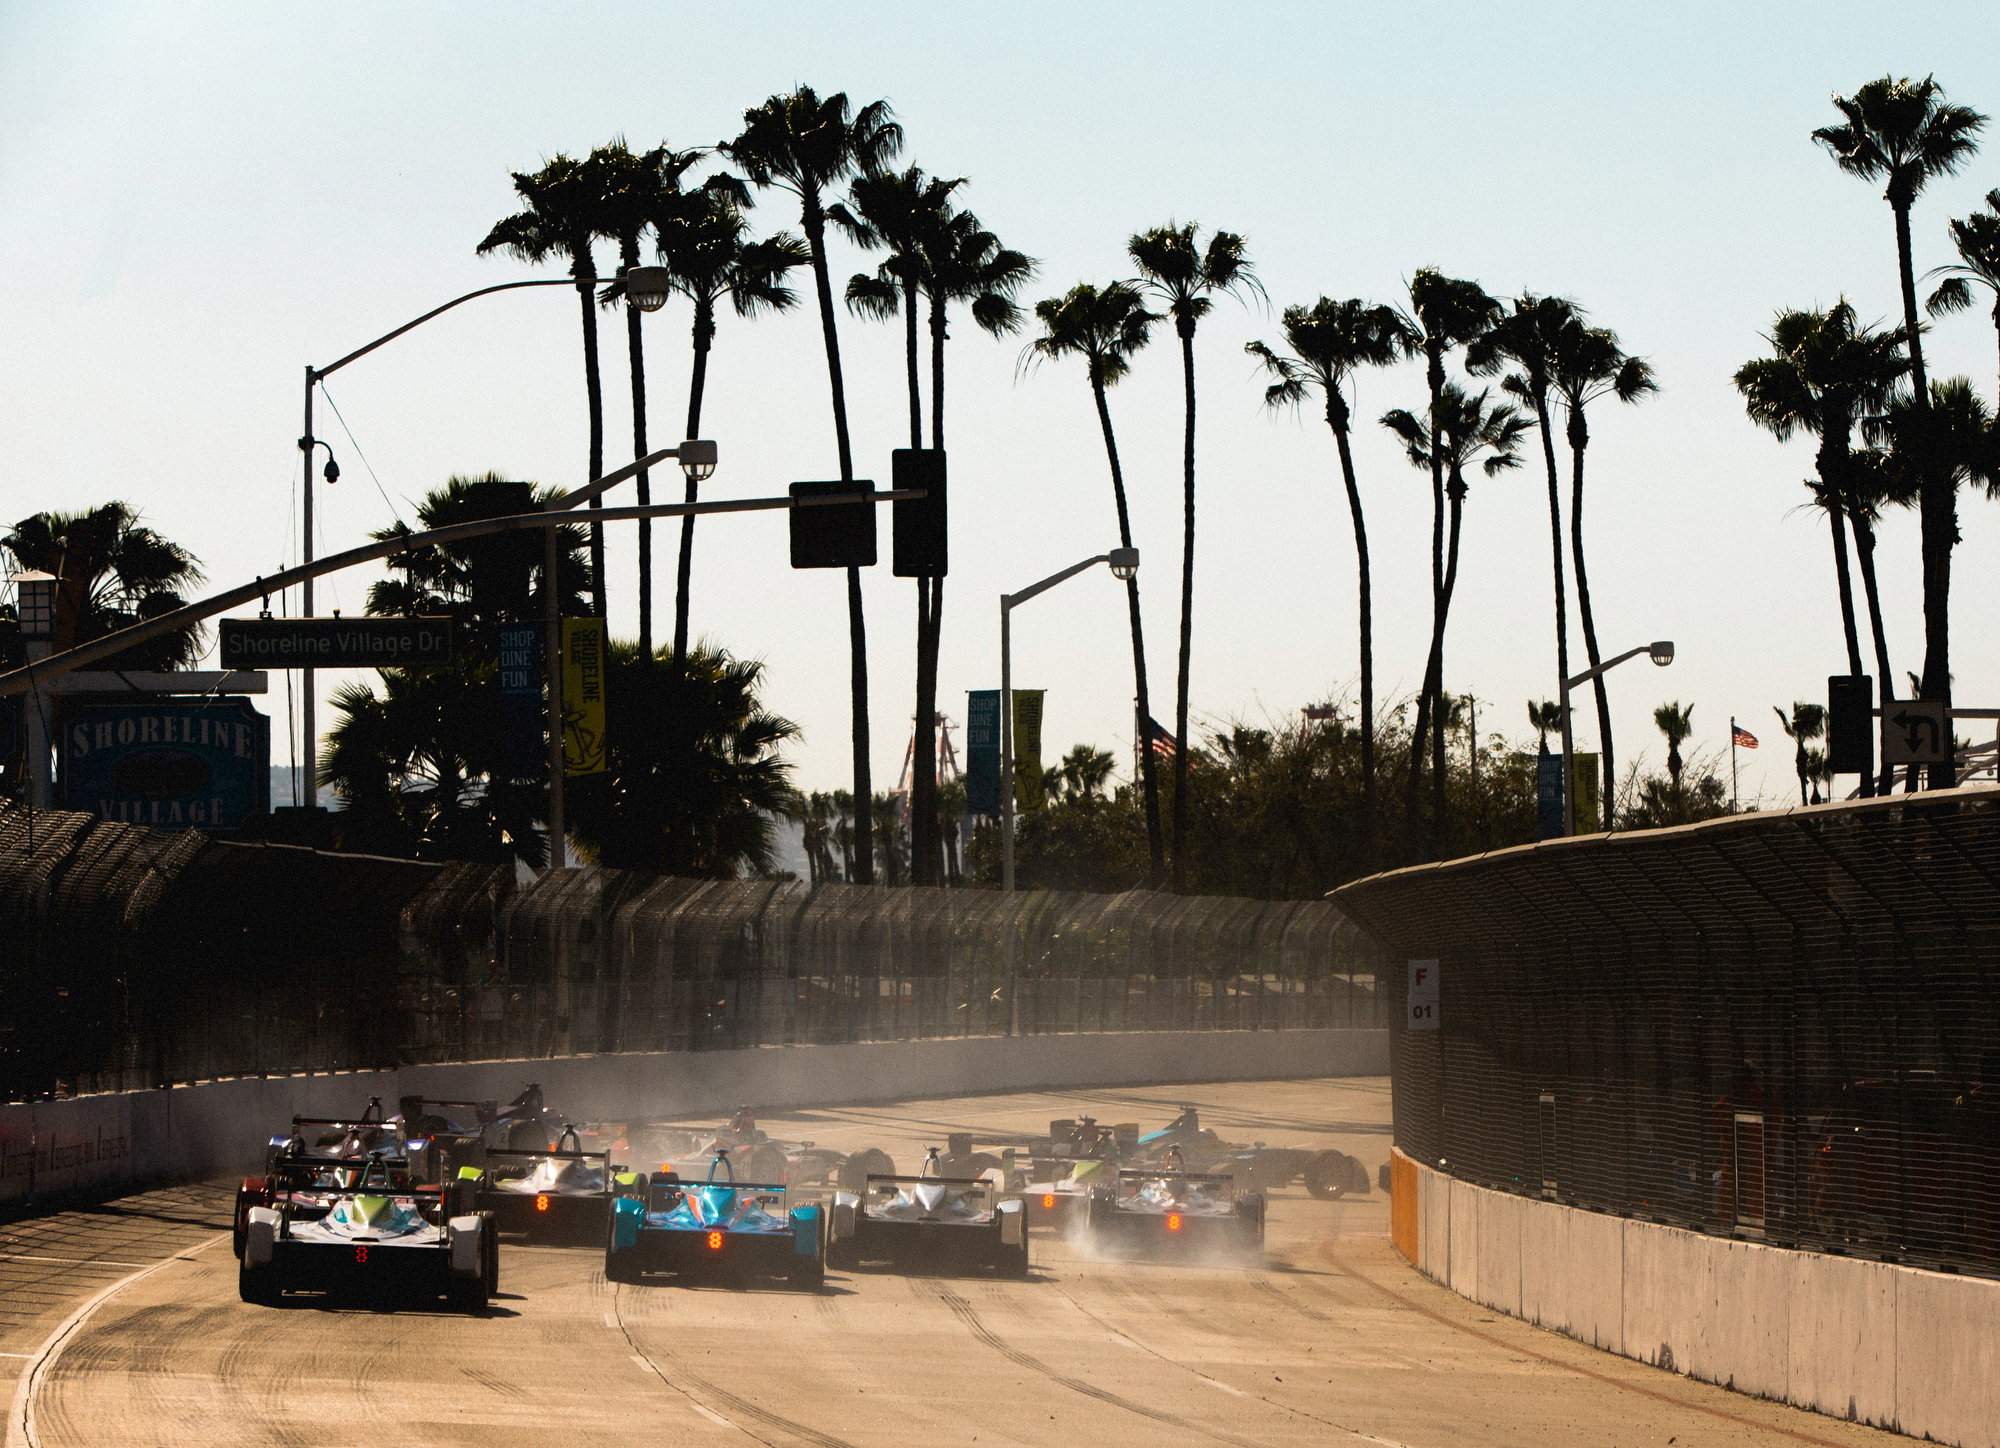 Start of the race. 2015/16 FIA Formula E Championship, Long Beach, California, USA.